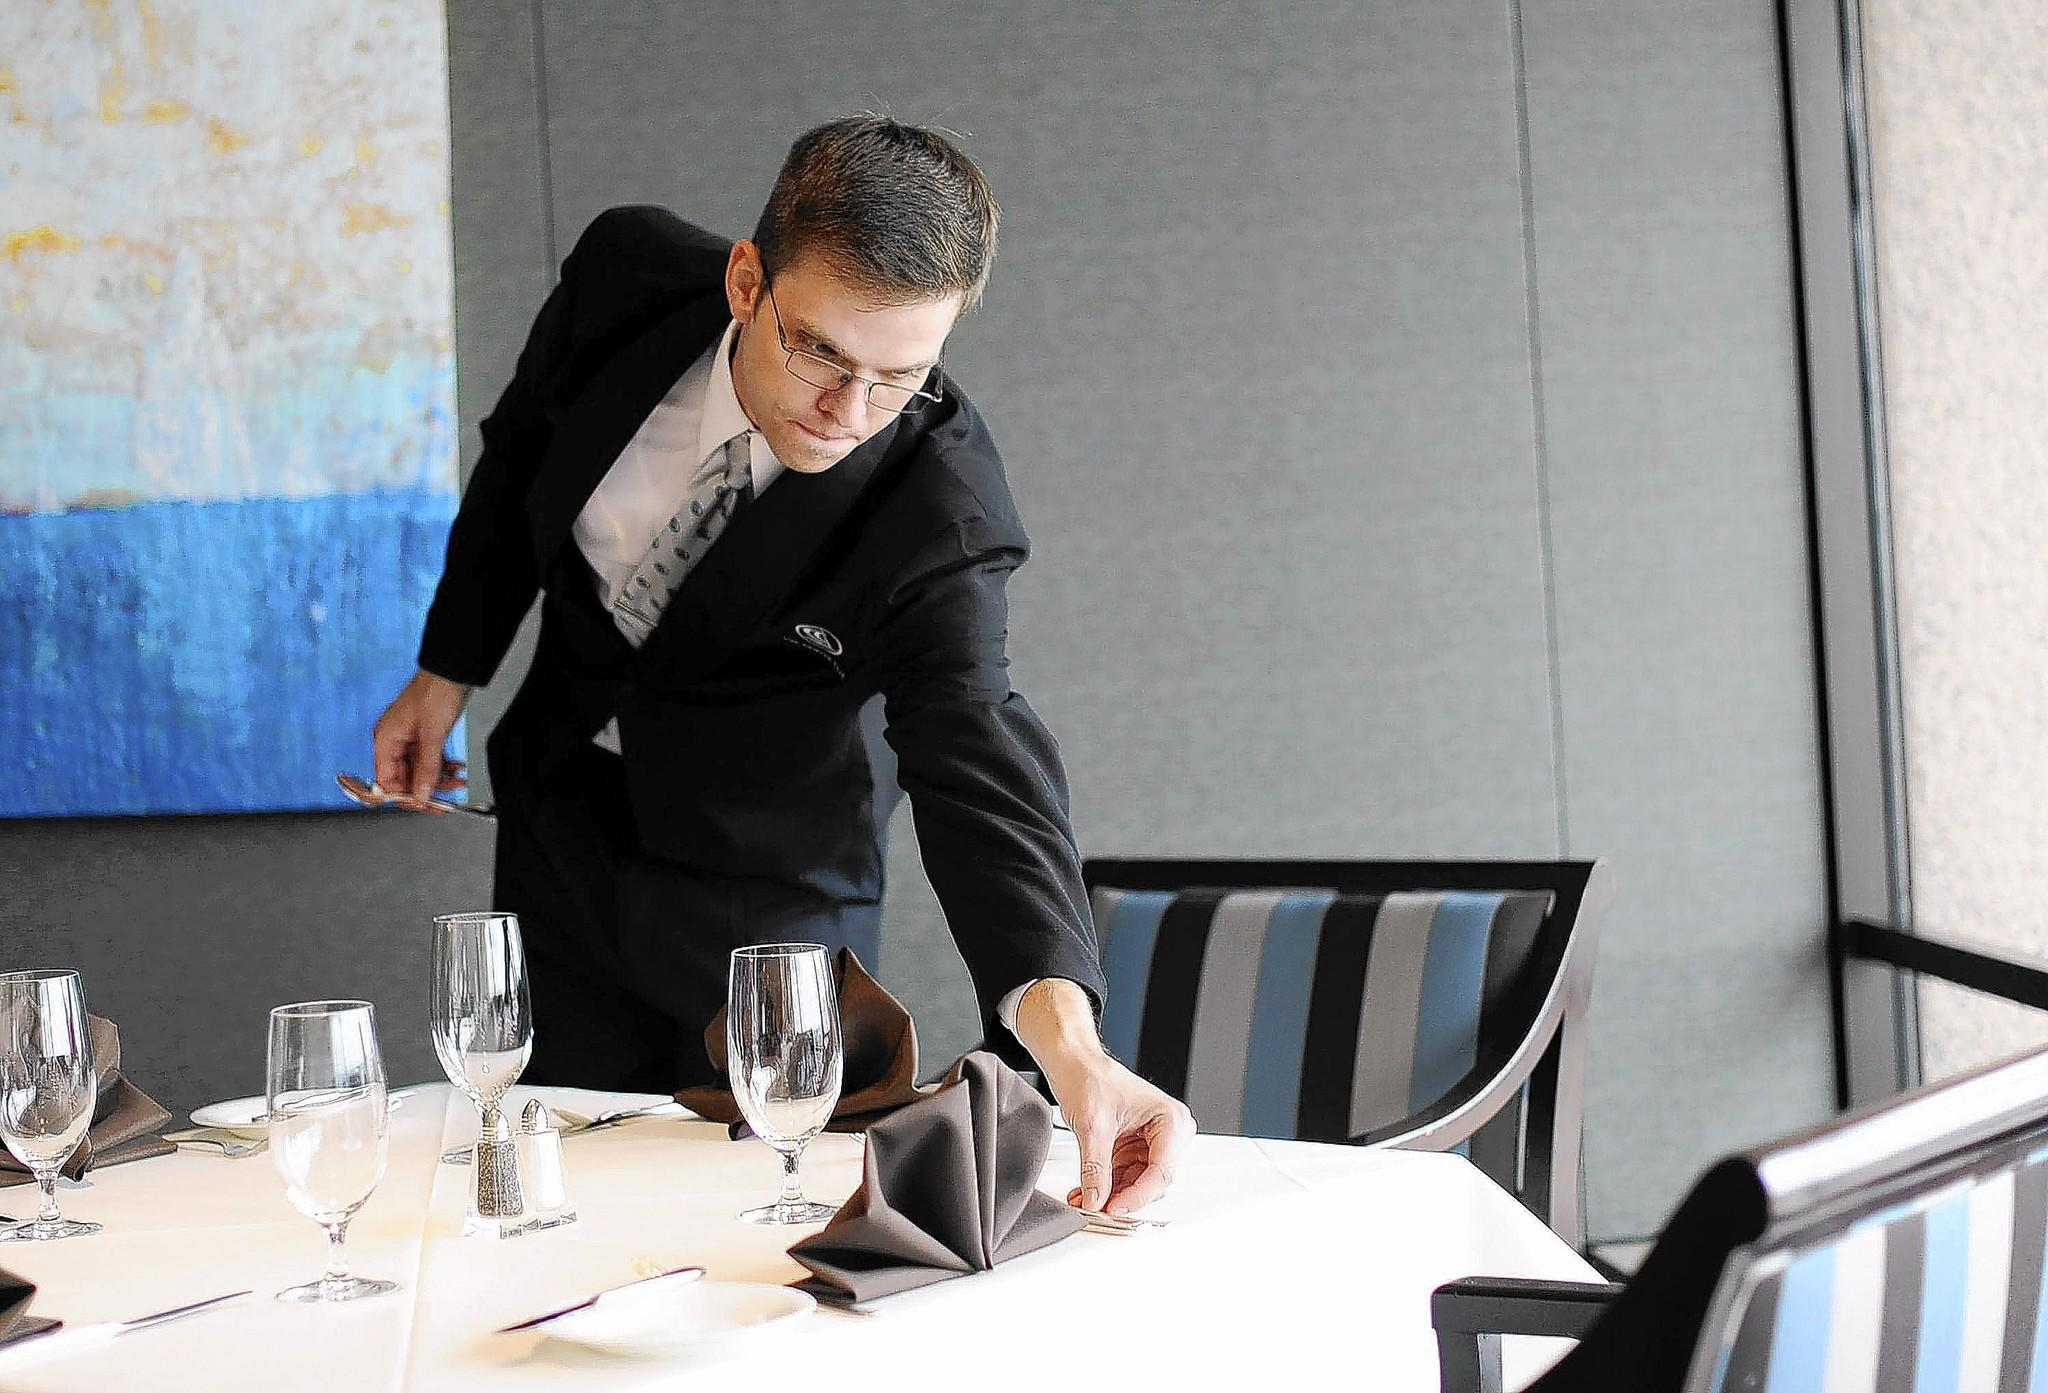 Server Matthew Lowe, of Baltimore, sets up tables with silverware and napkins for lunch in the Center Club.